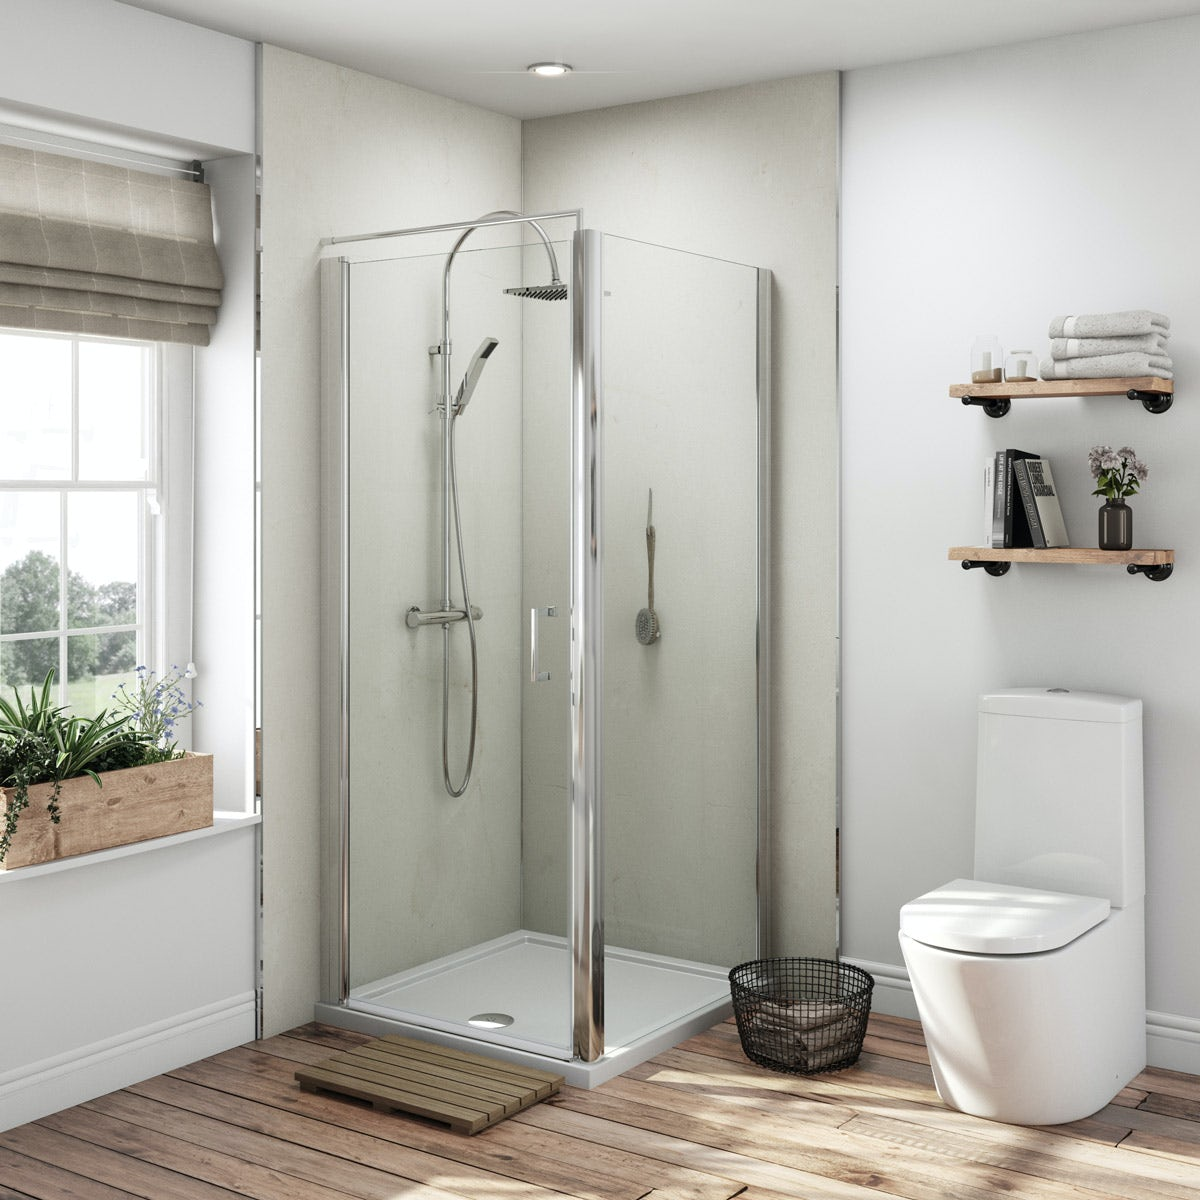 Multipanel Classic Marfil Cream Hydrolock shower wall panel